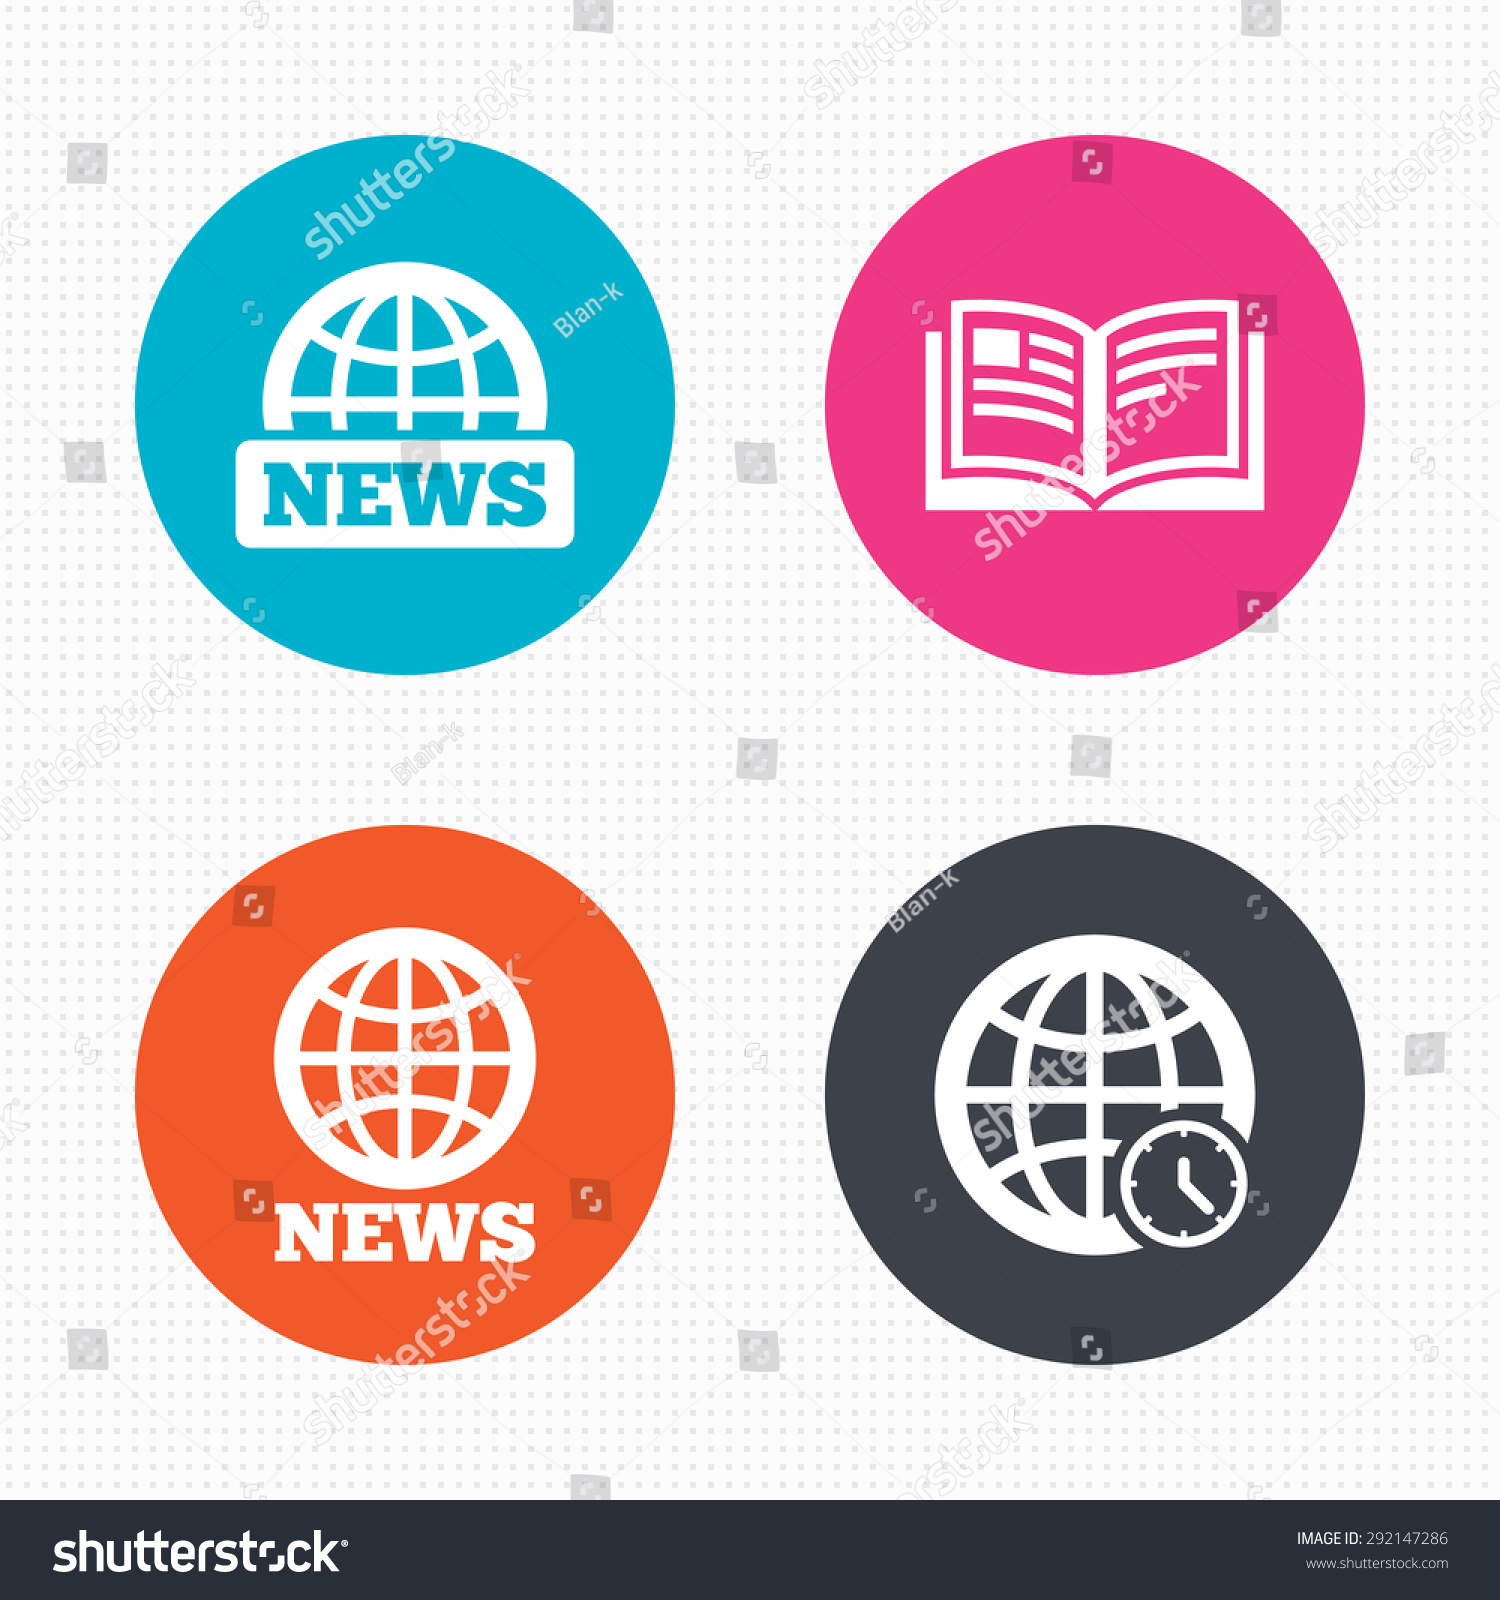 circle buttons news icons world globe stock vector  world globe symbols open book sign education literature